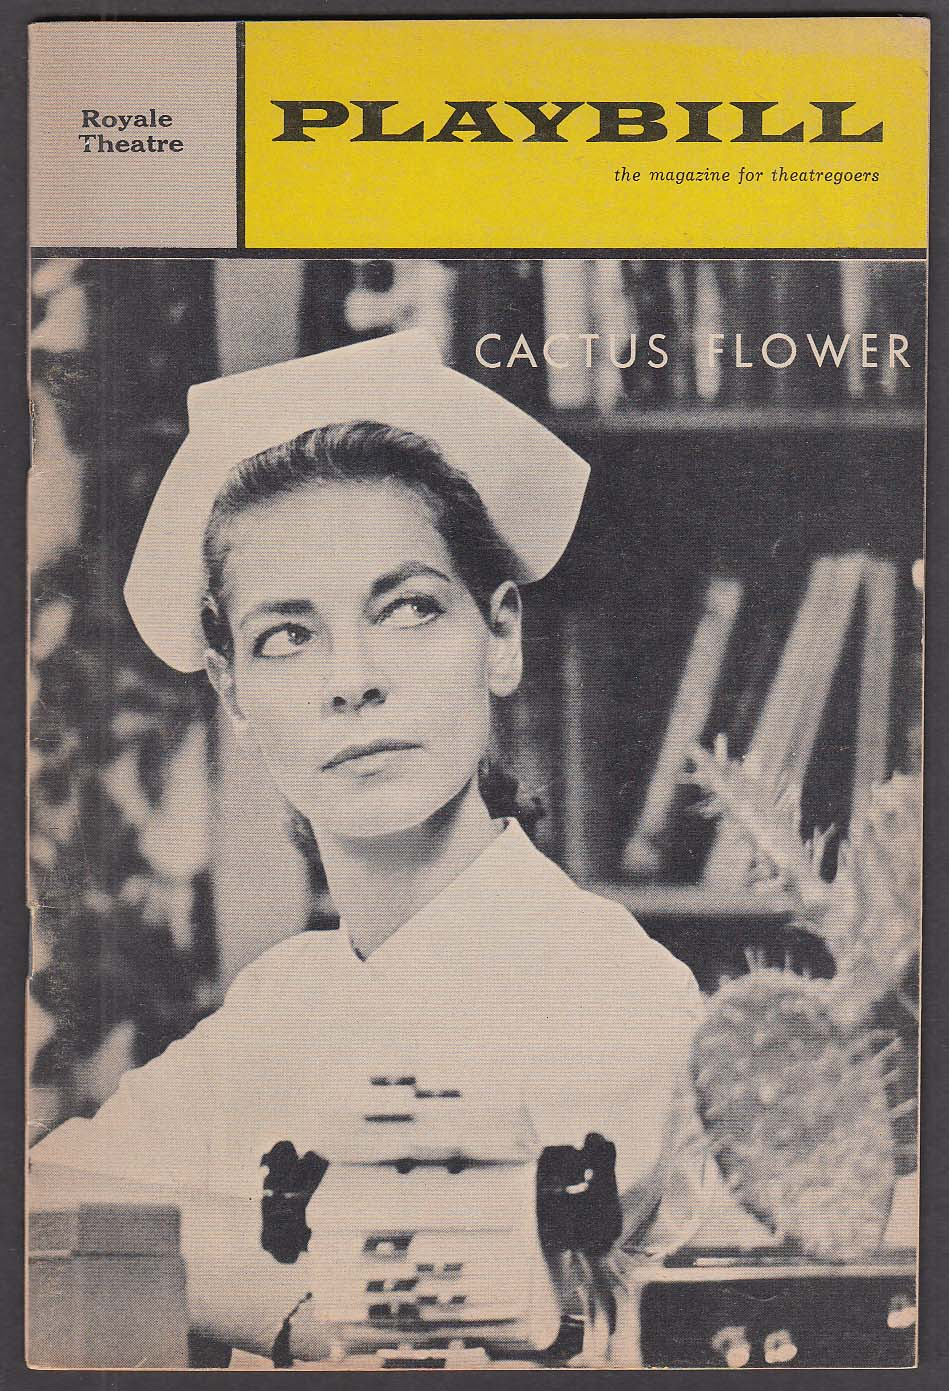 Image for Lauren Bacall Cactus Flower opening run Playbill 1966